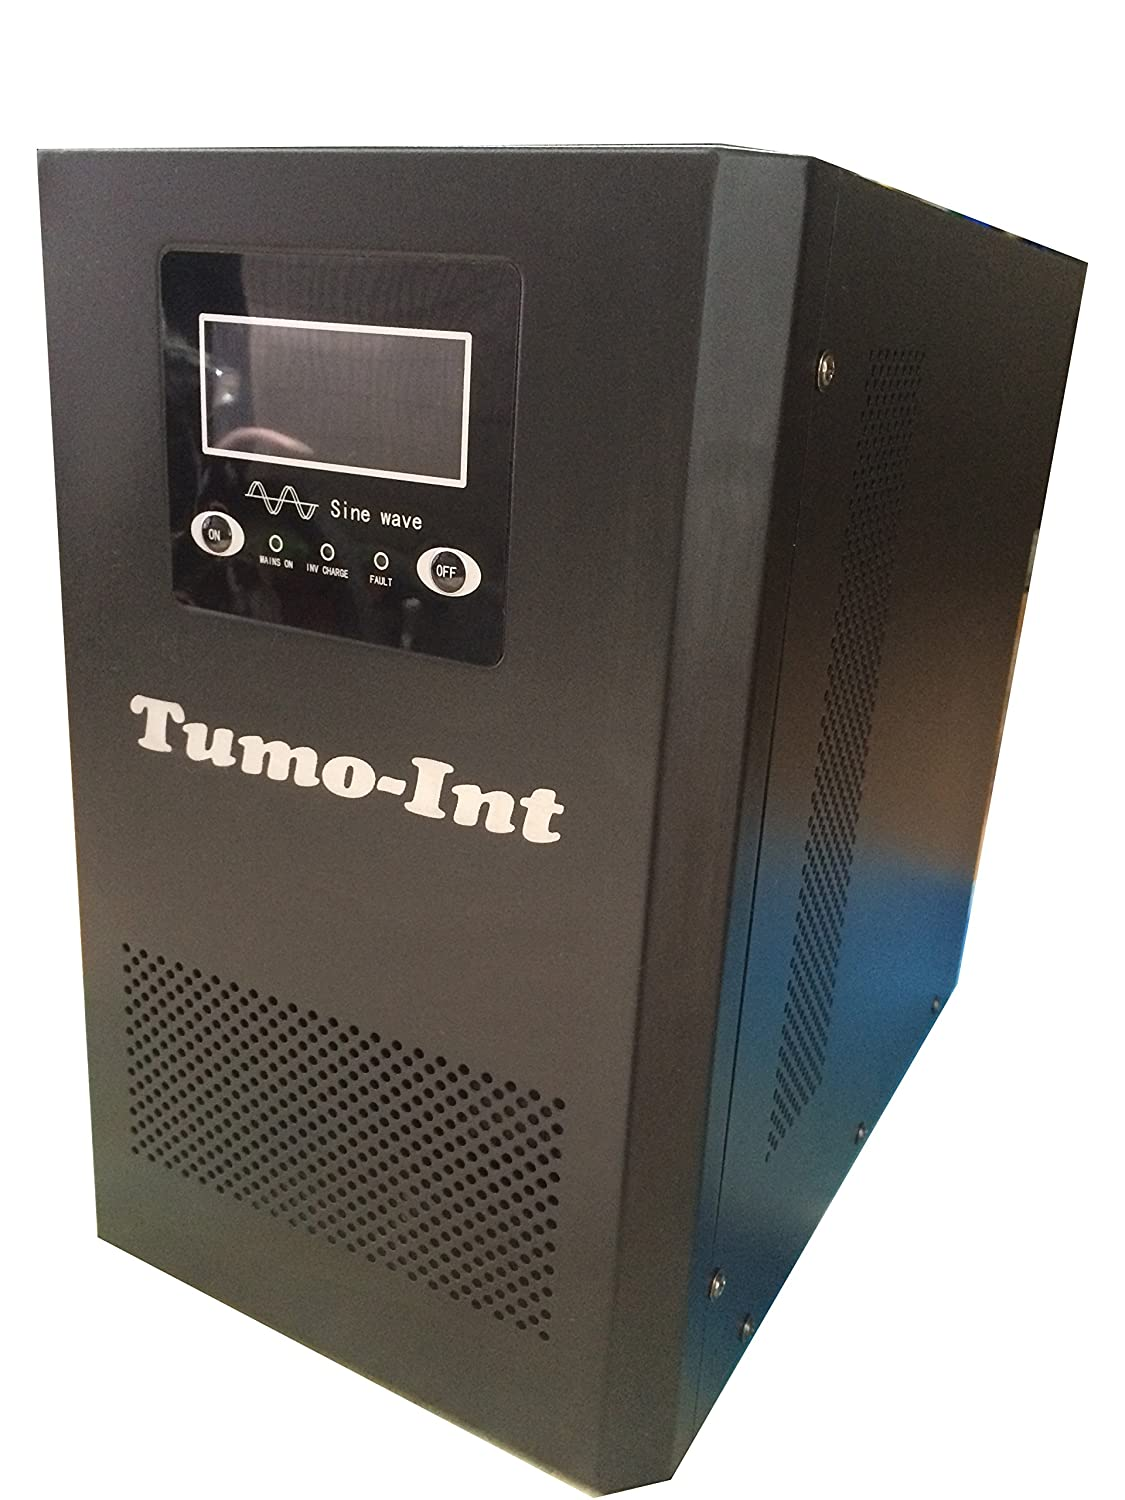 tumo-int 2000 Watt reiner SINUS Inverter Backup Power Inverter, Solar Laden und Grid Tie